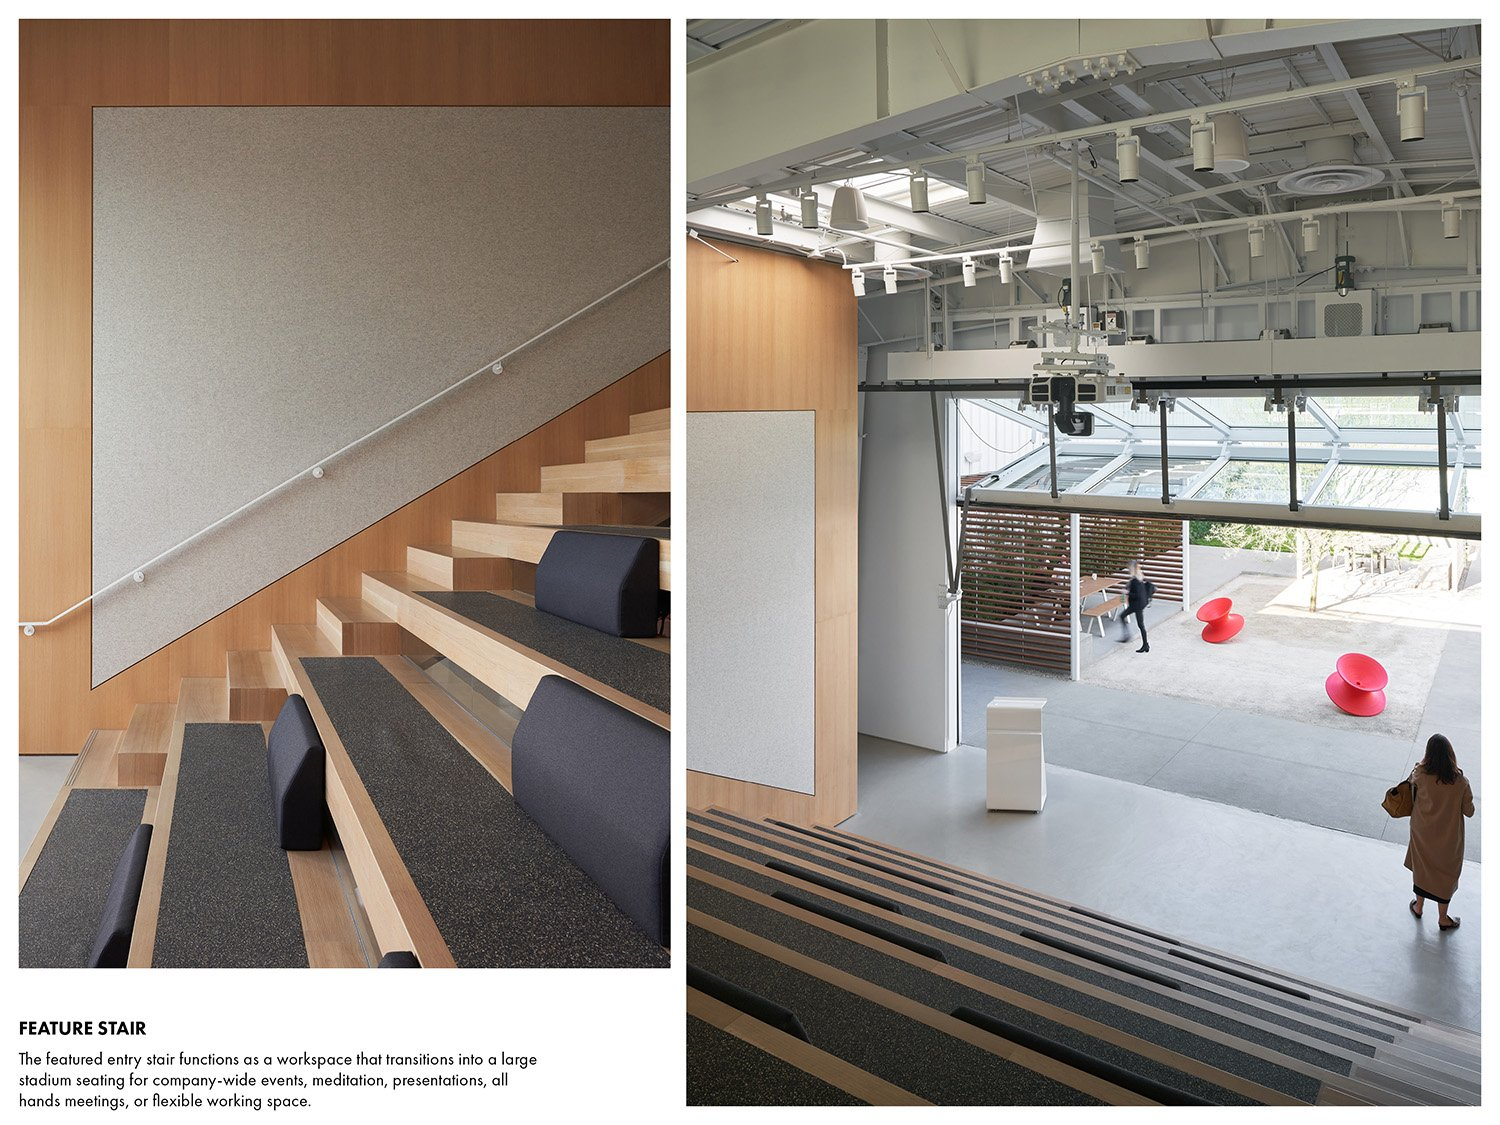 The featured entry stair functions as a workspace that transitions into a large stadium seating for company-wide events, meditation, presentations, all hands meetings, or flexible working space. Kevin Scott}